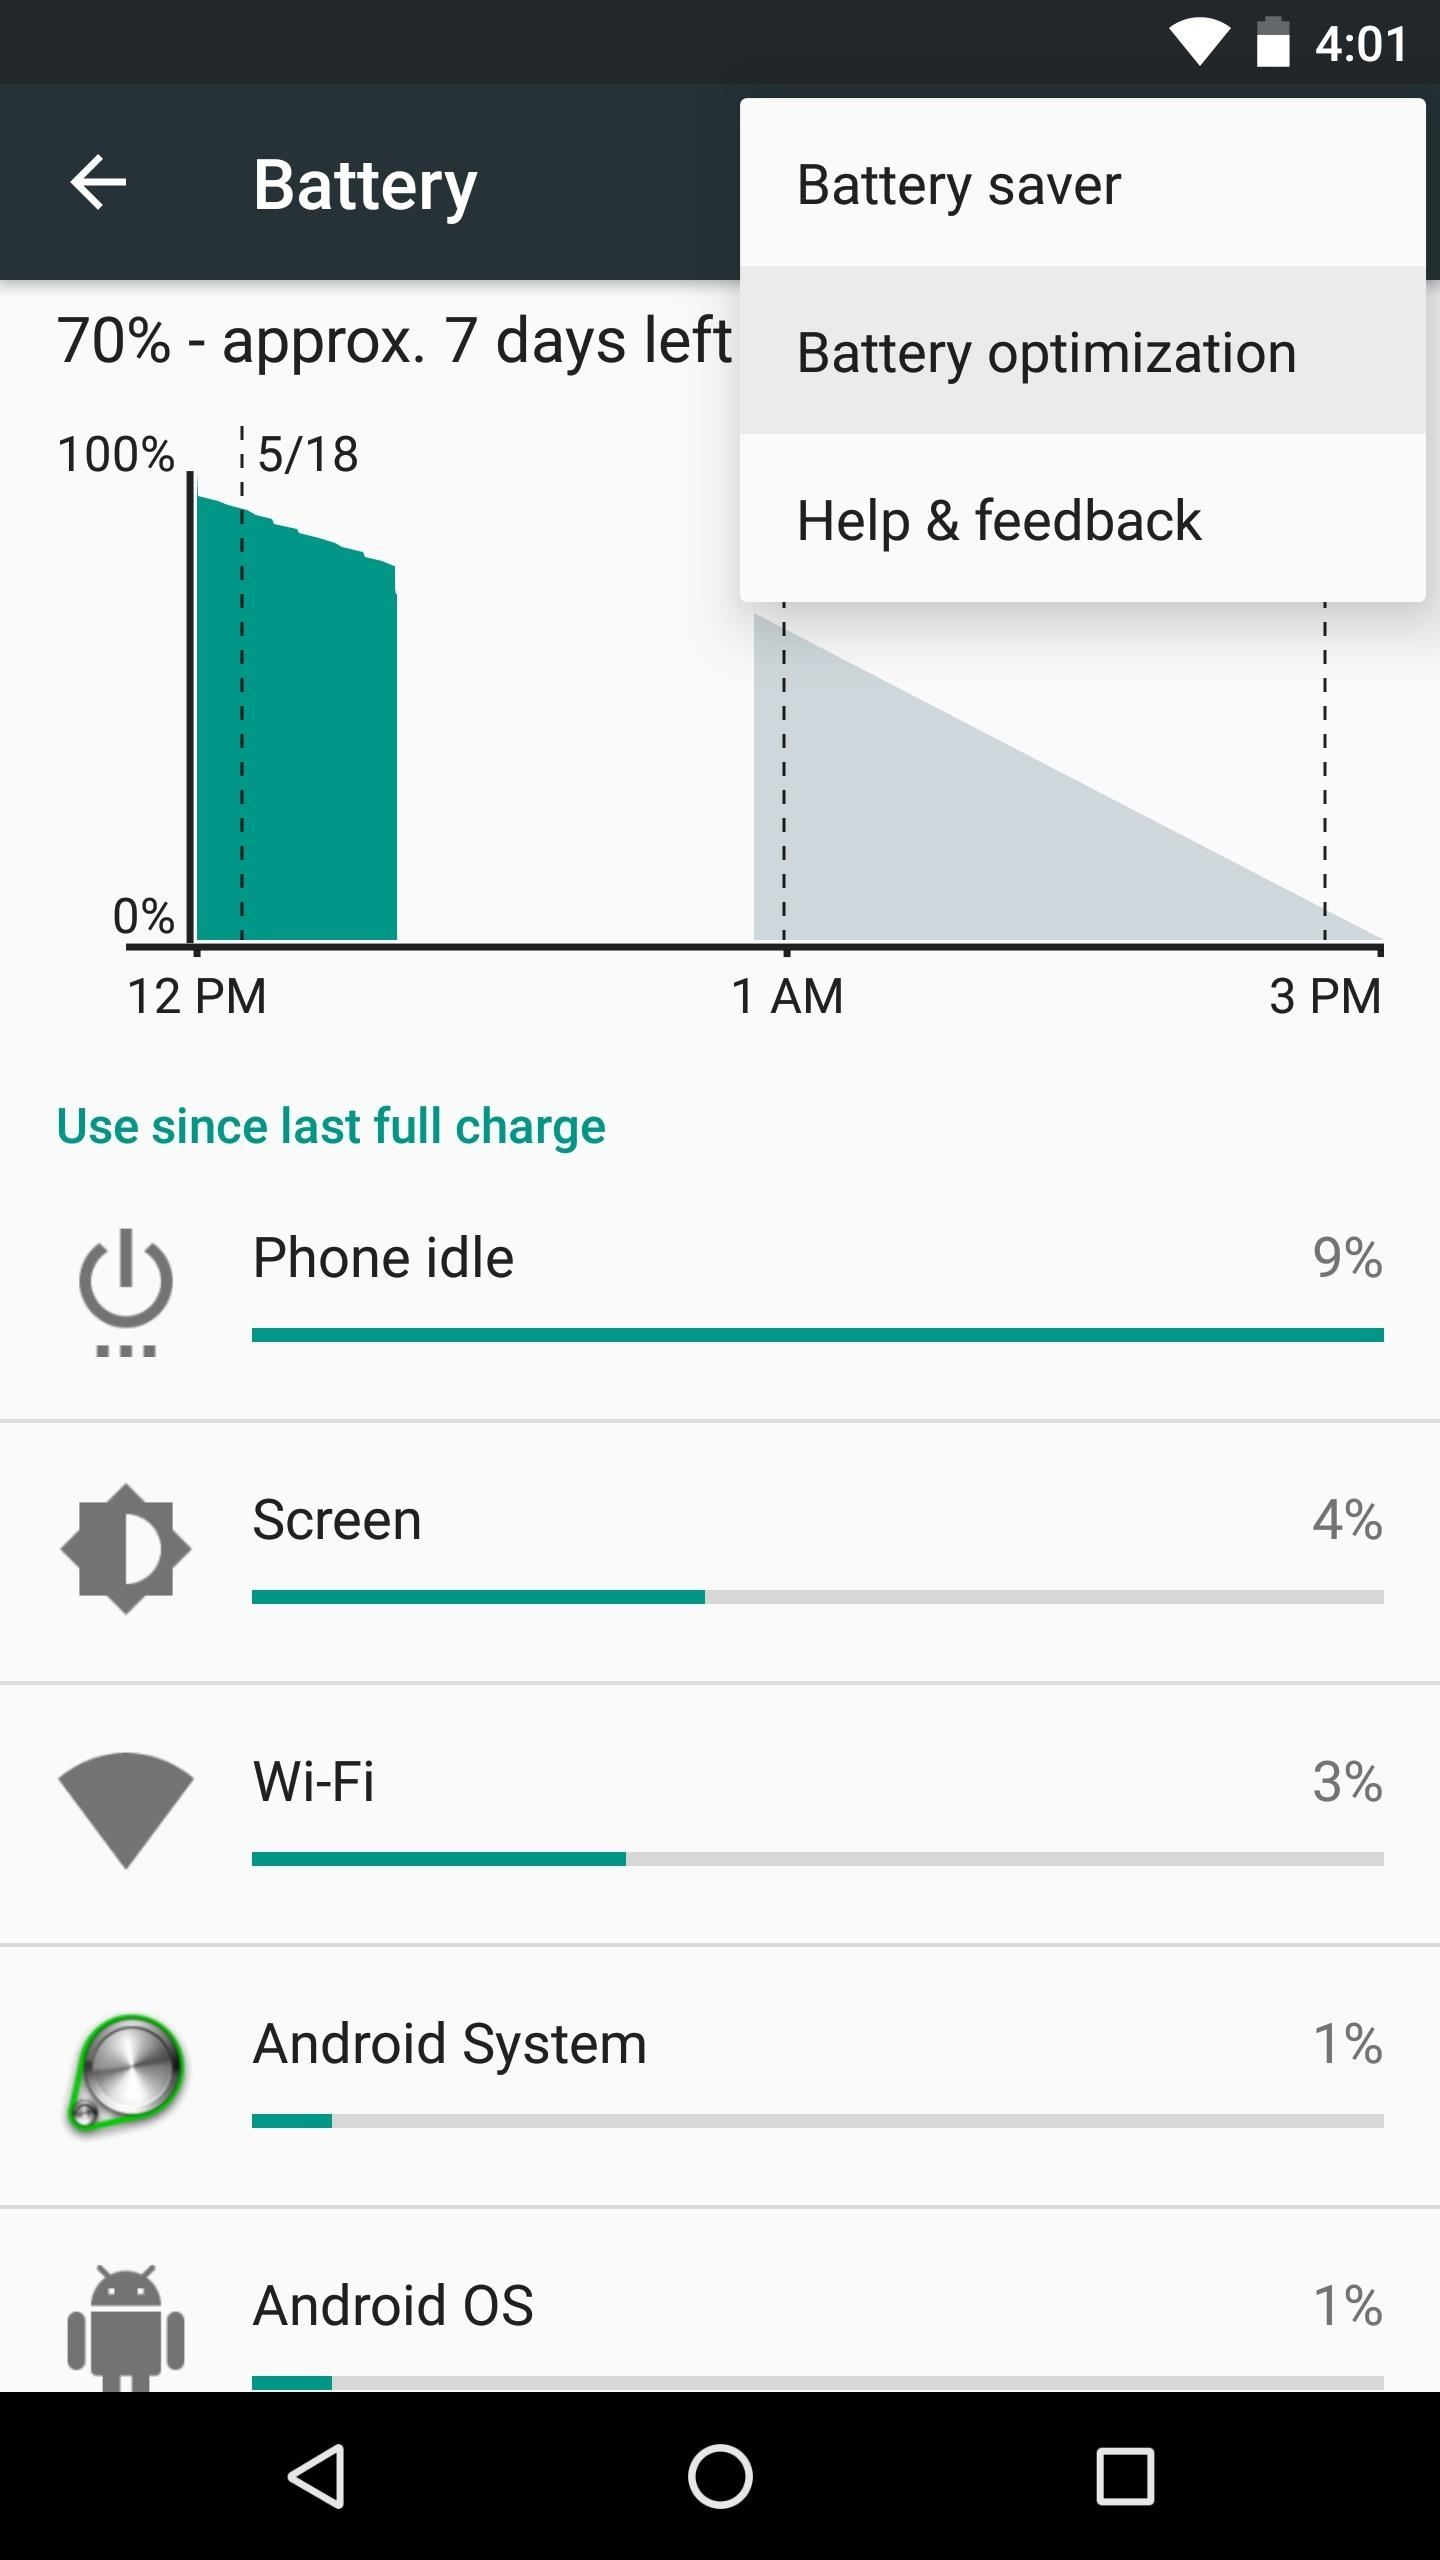 Fix Play Services Battery Drain by Forcing It to Use Doze Mode